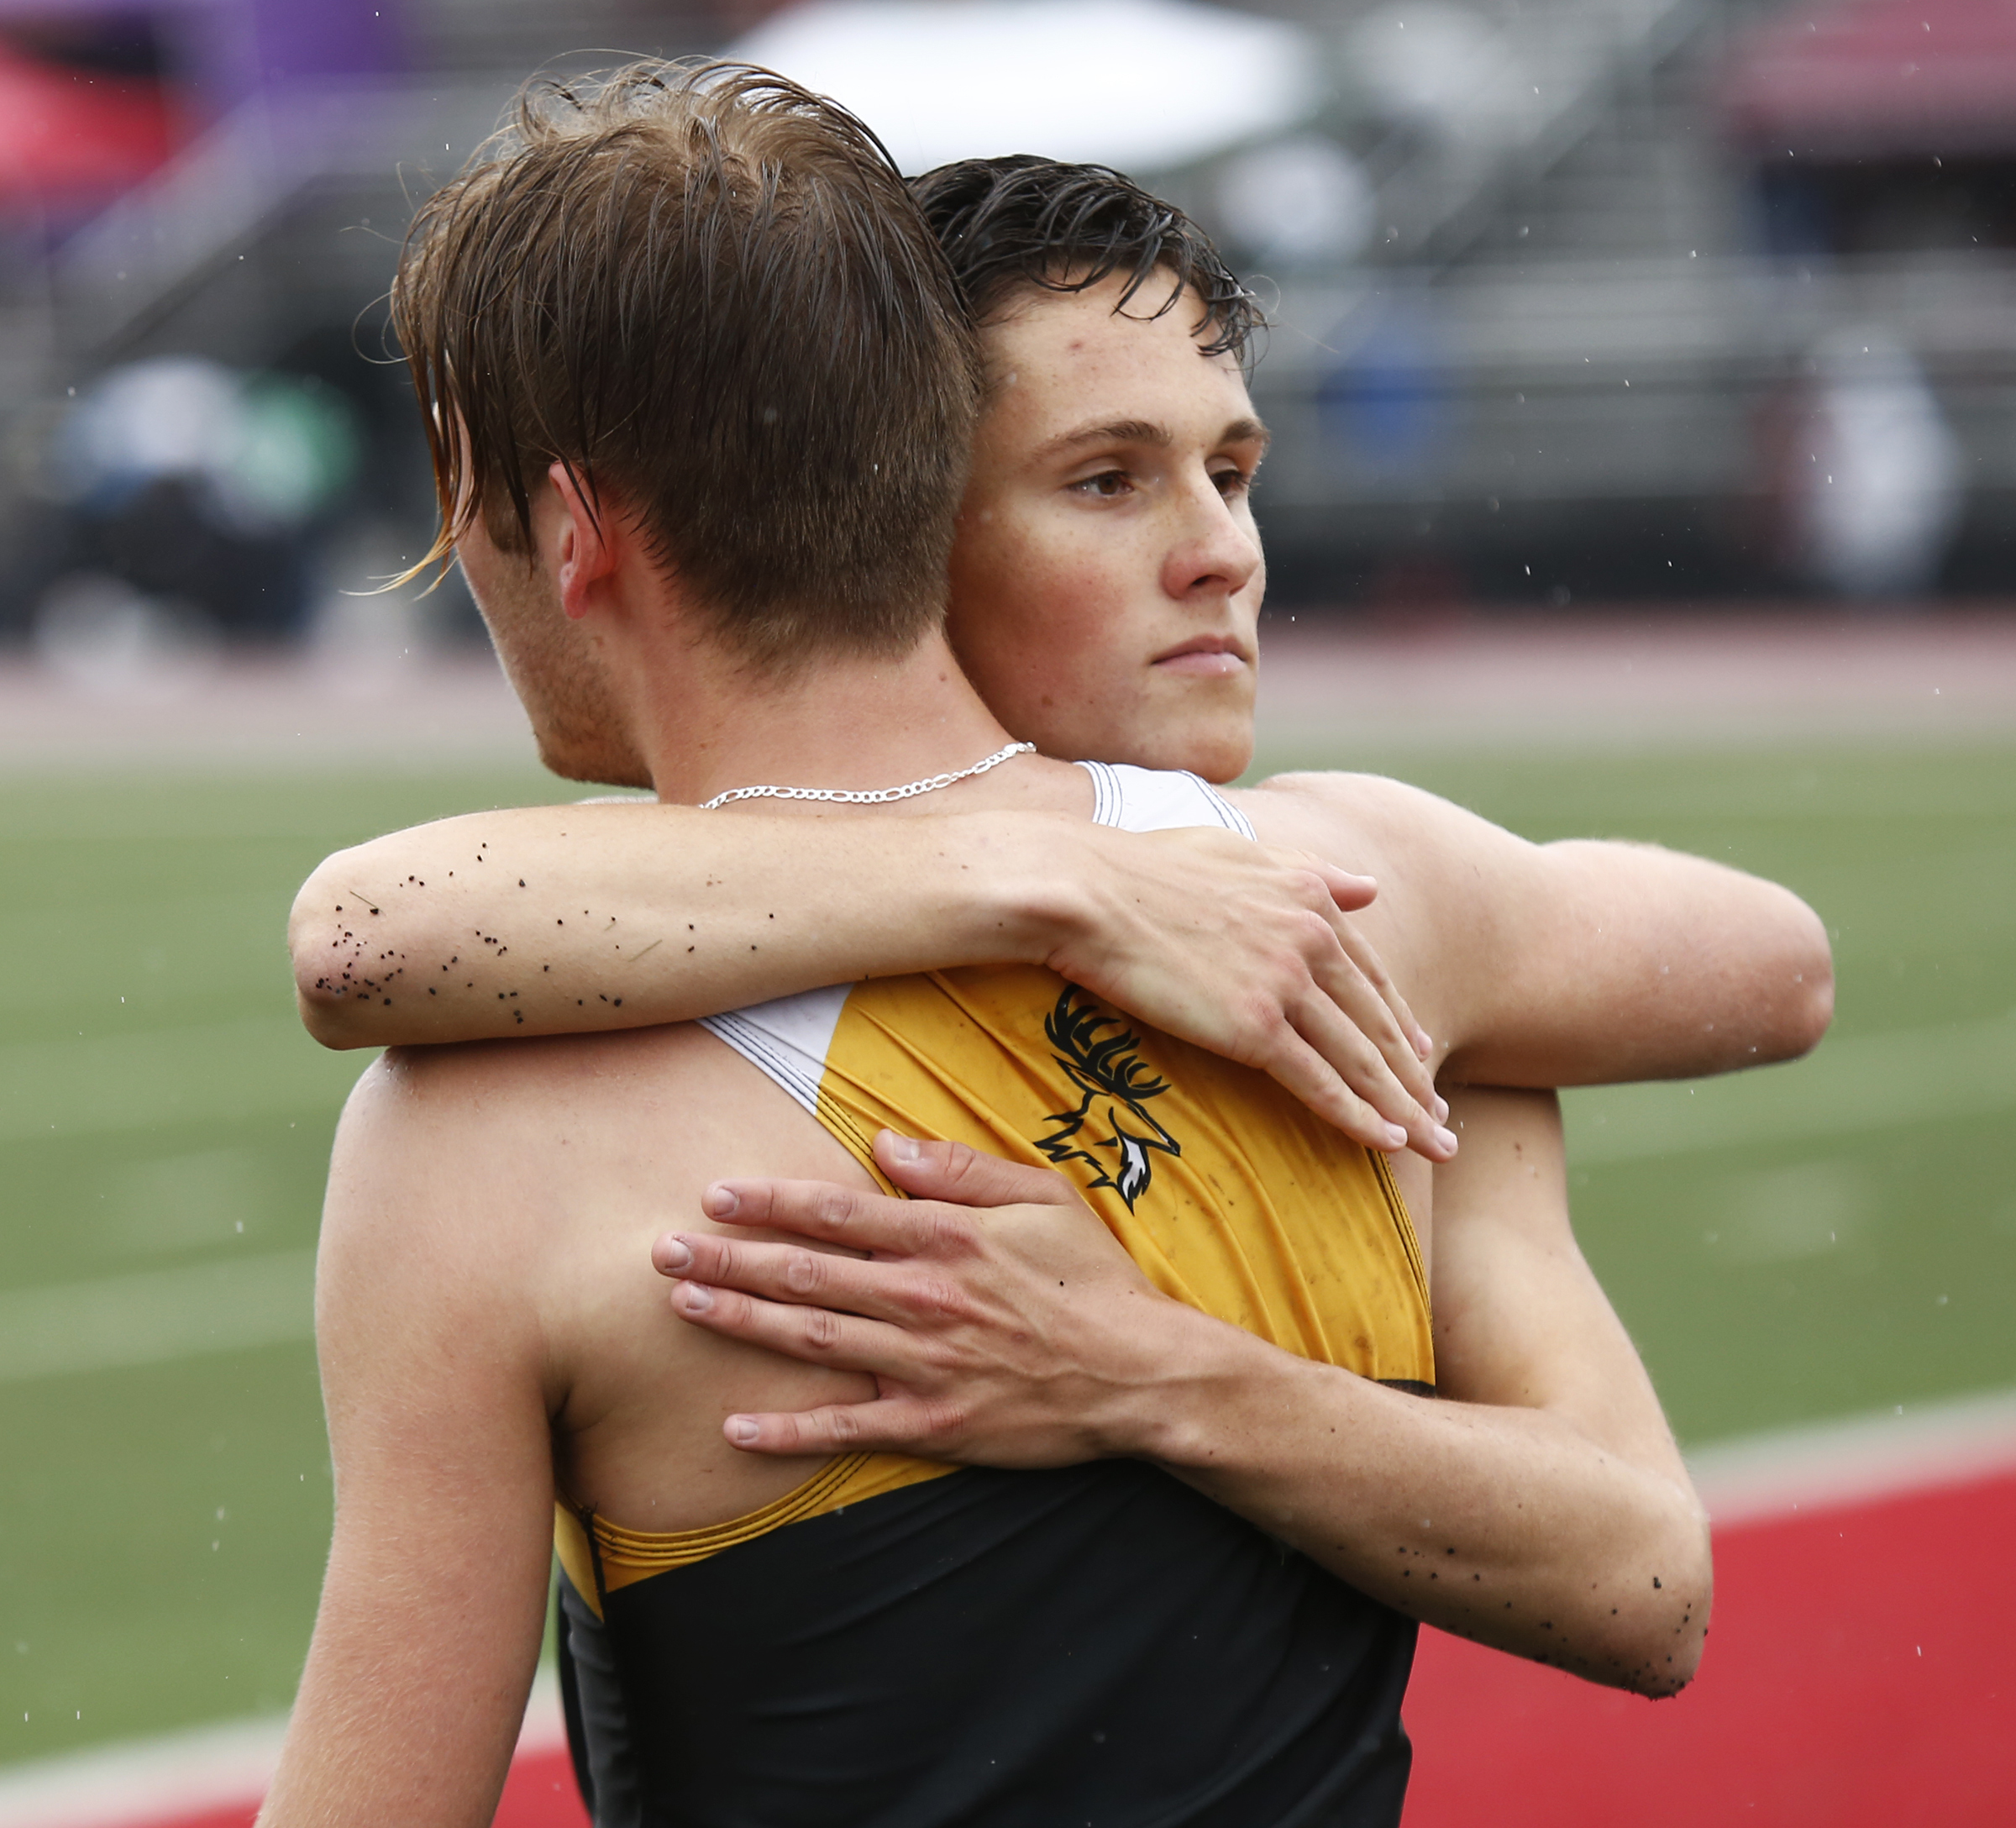 Ben Bunch (right) embraces teammate Brian Baker after the victory.